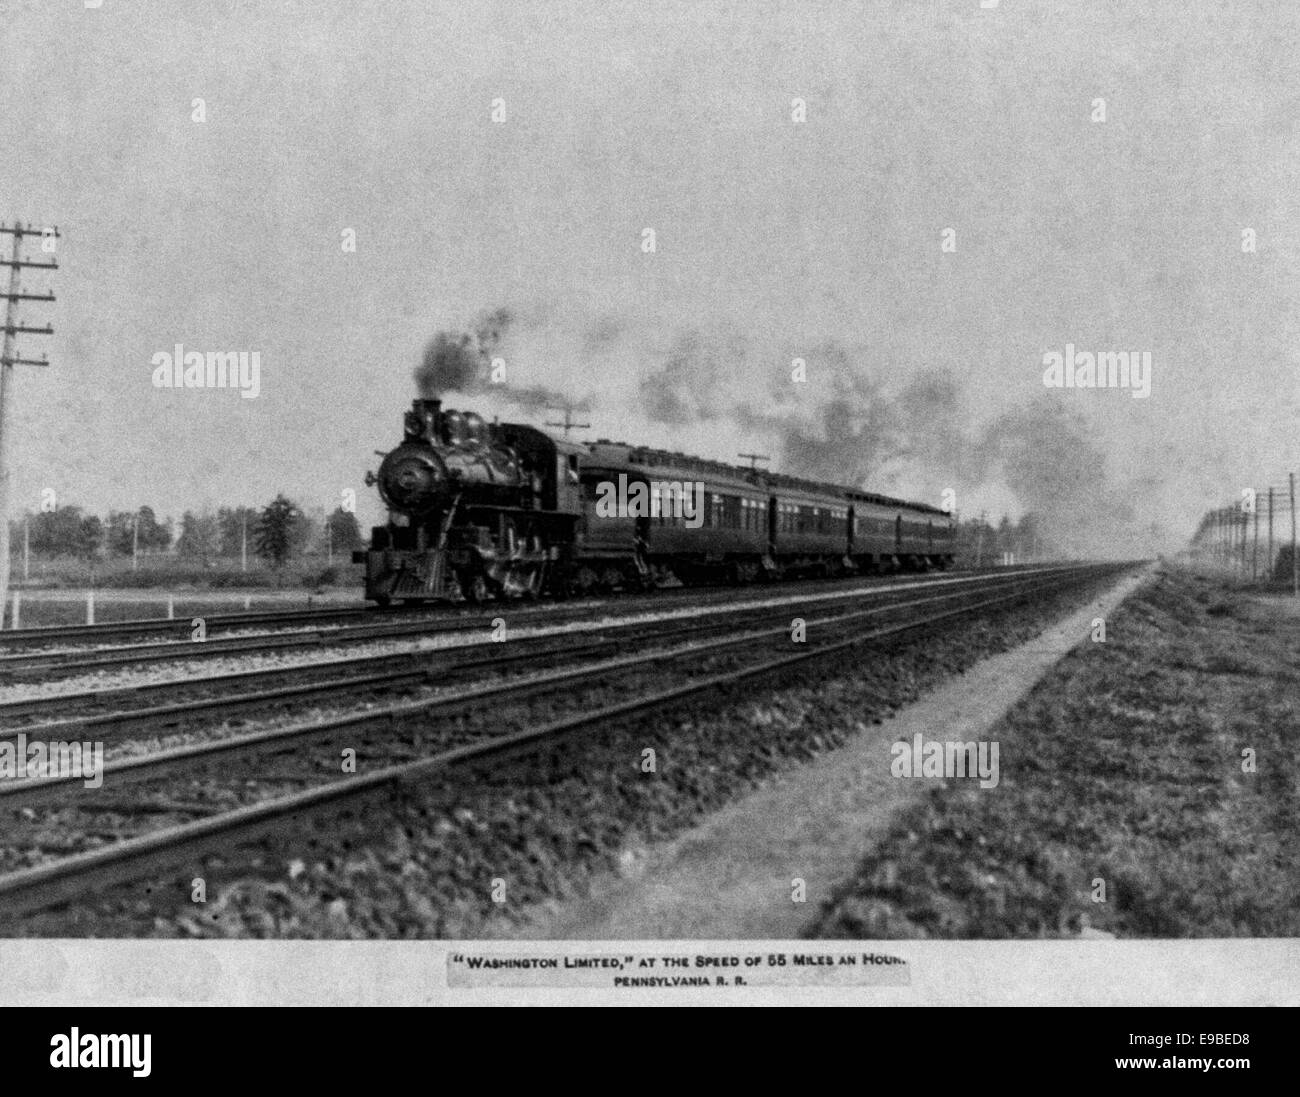 Washington Limited at the speed of 55 miles an hour 1896 - Stock Image